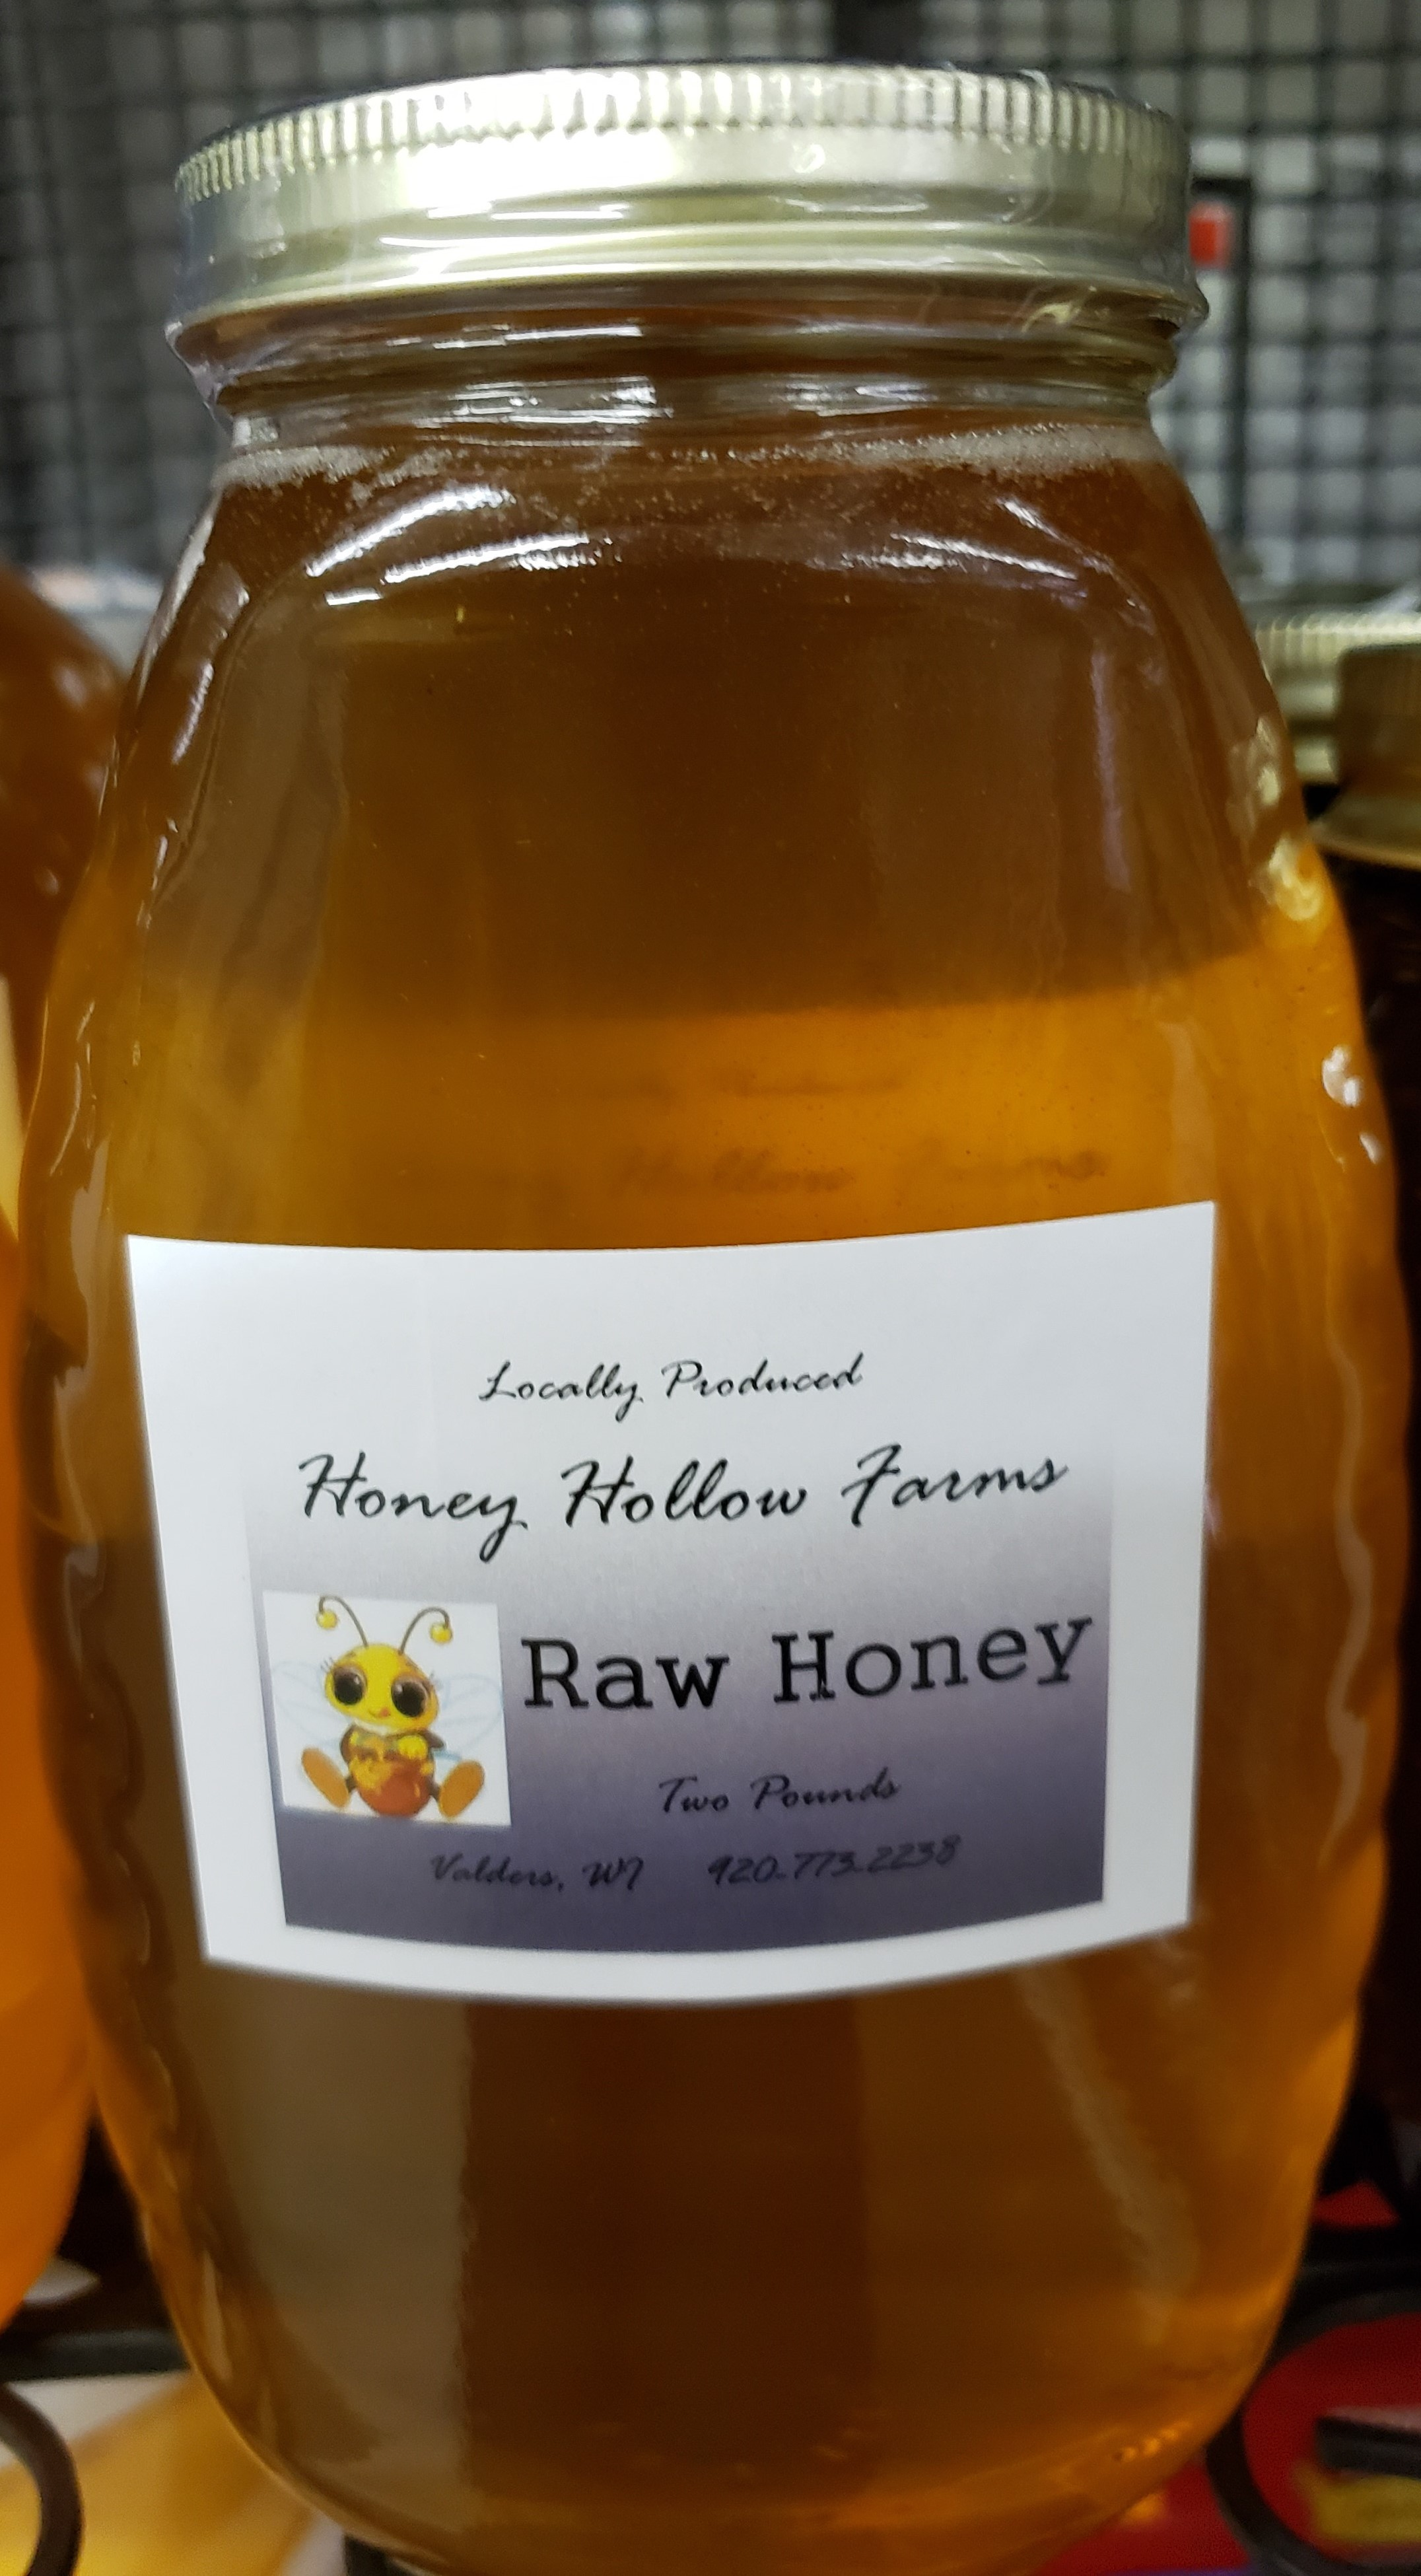 Honey Hollow Farms Local Honey - 2 Pound (Pickup Item Only)